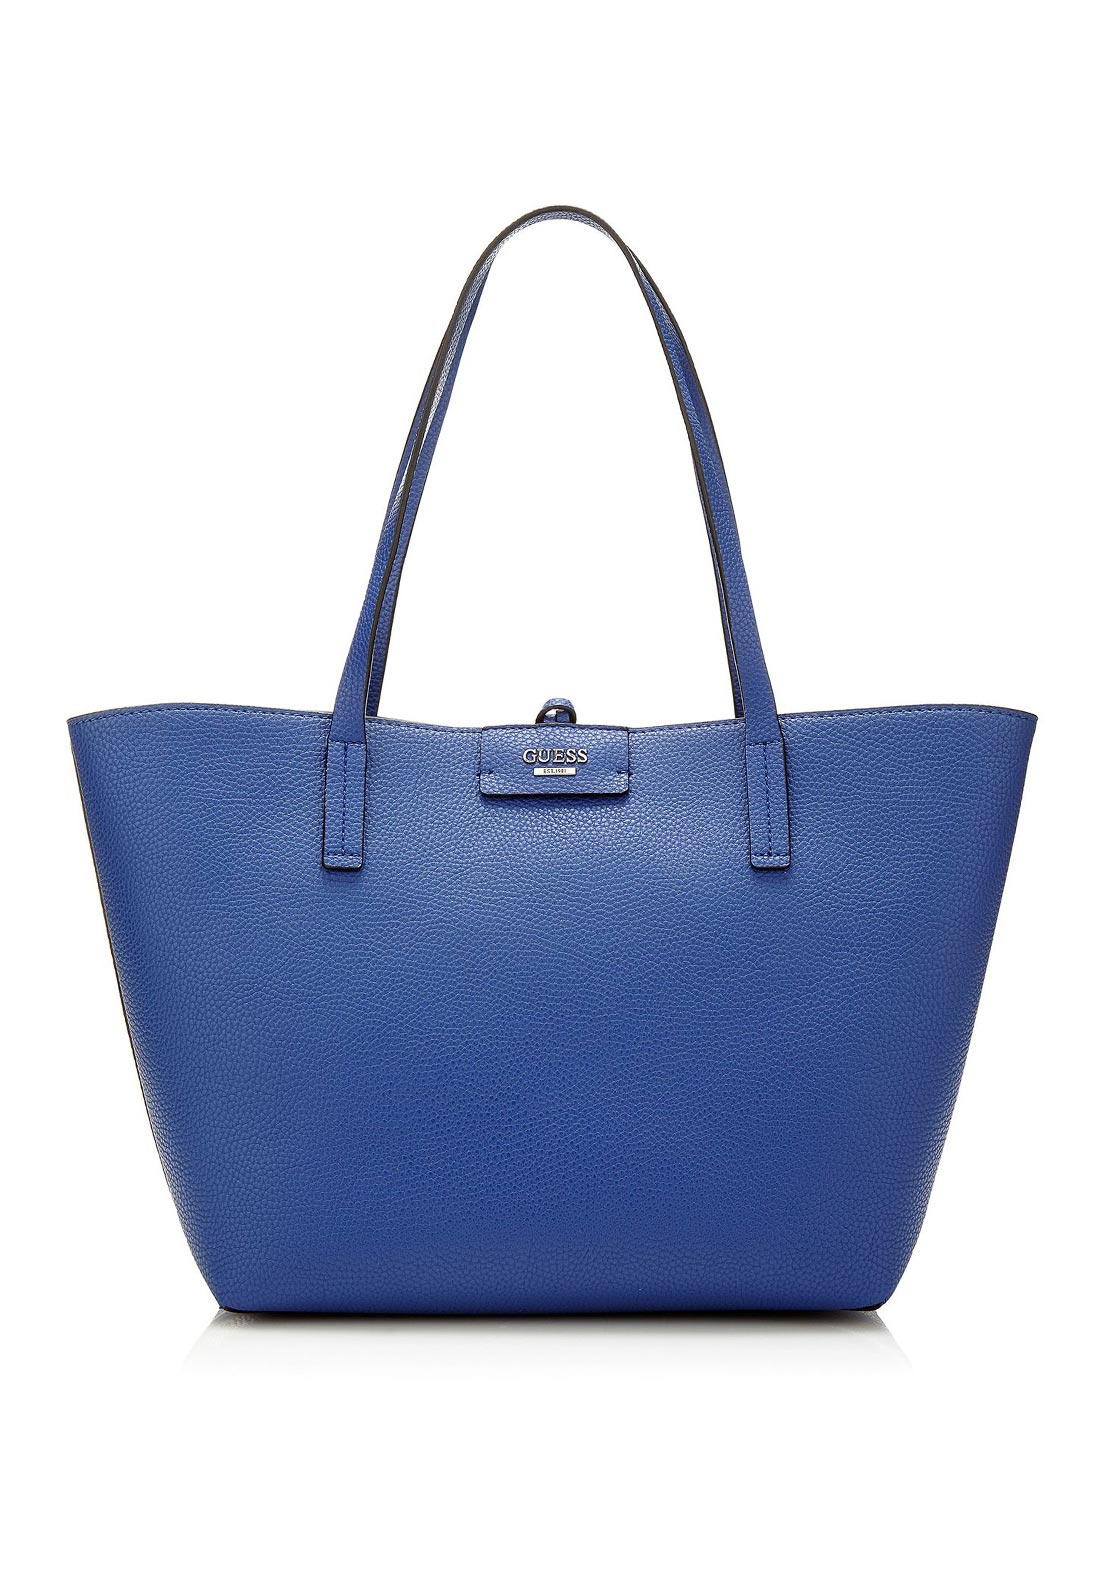 Guess Bobbi Reversible Tote Bag, Cobalt Blue